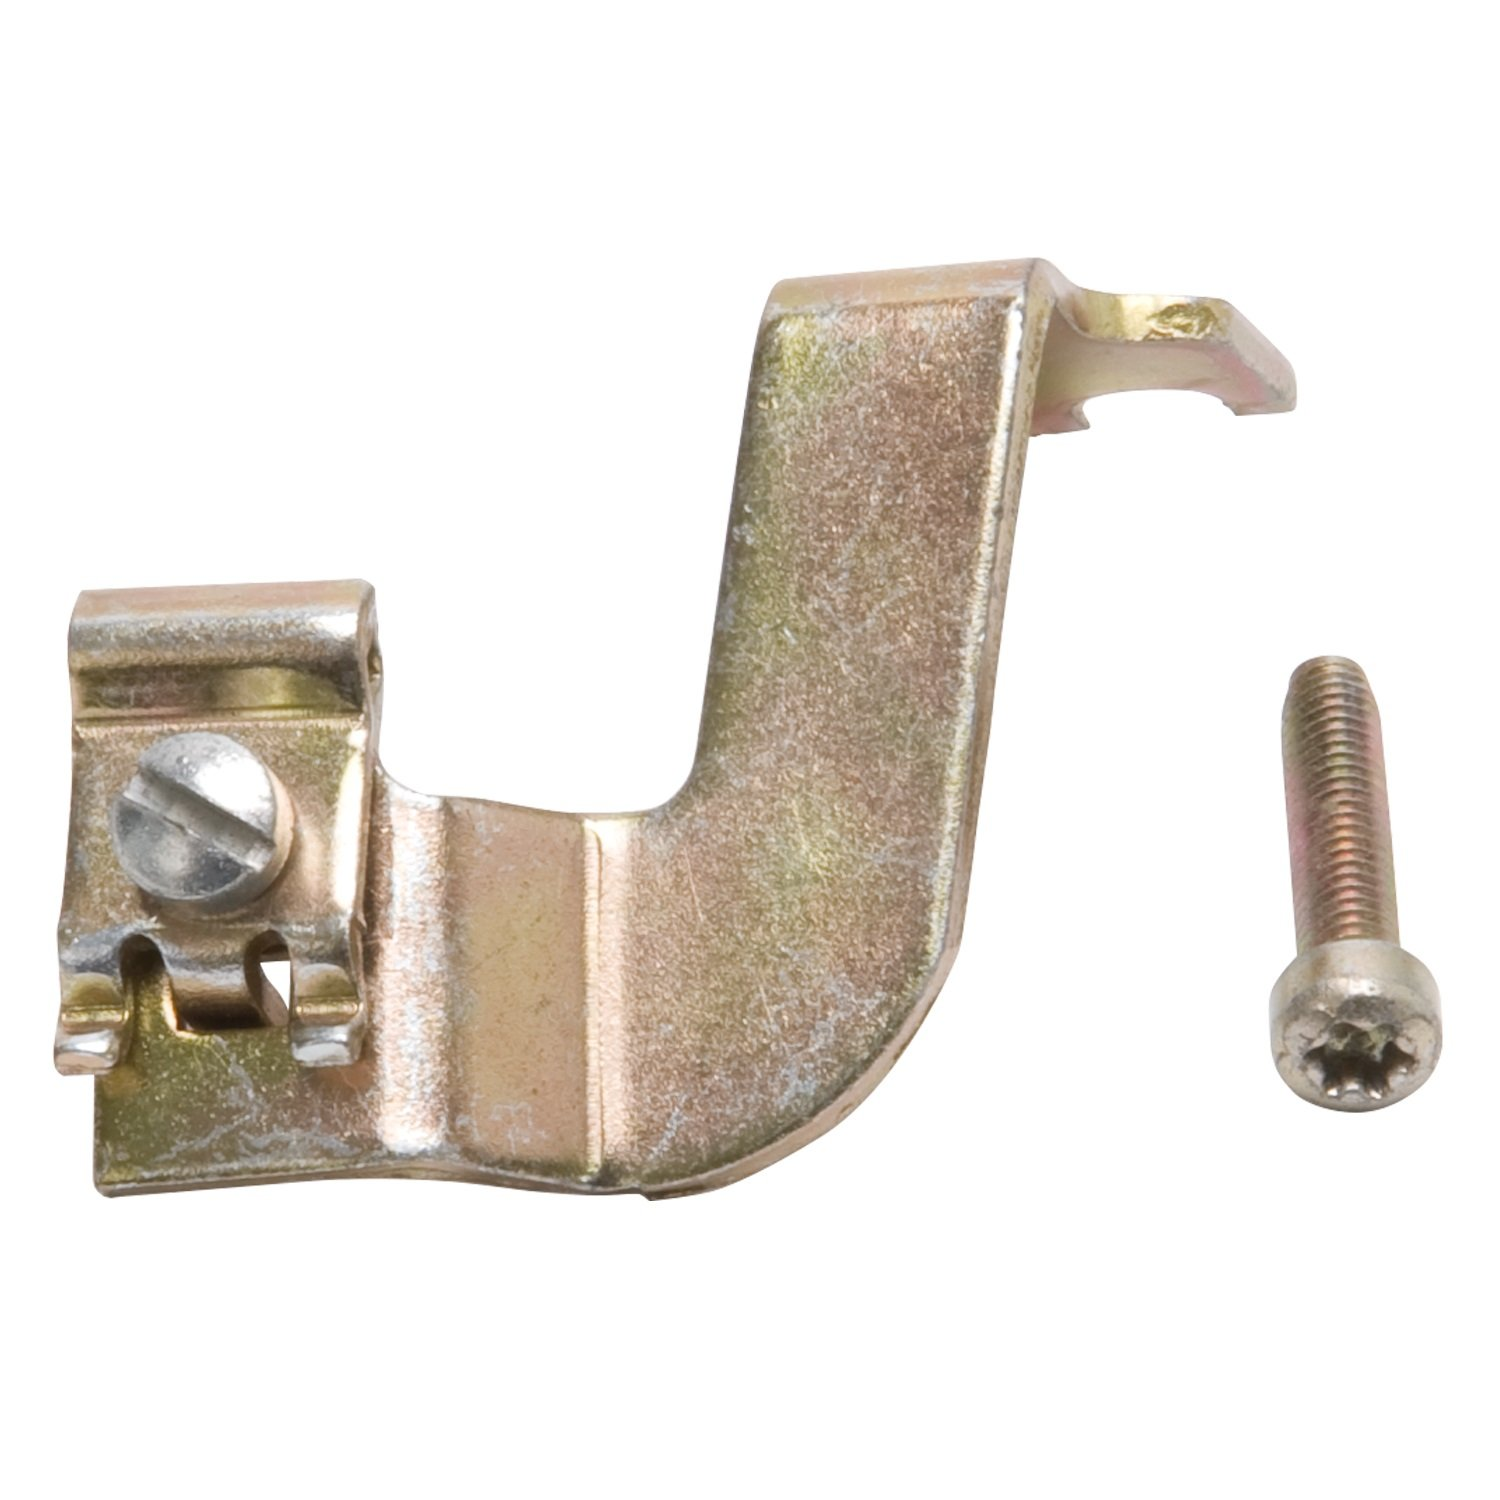 Edelbrock 1494 Choke Cable Bracket